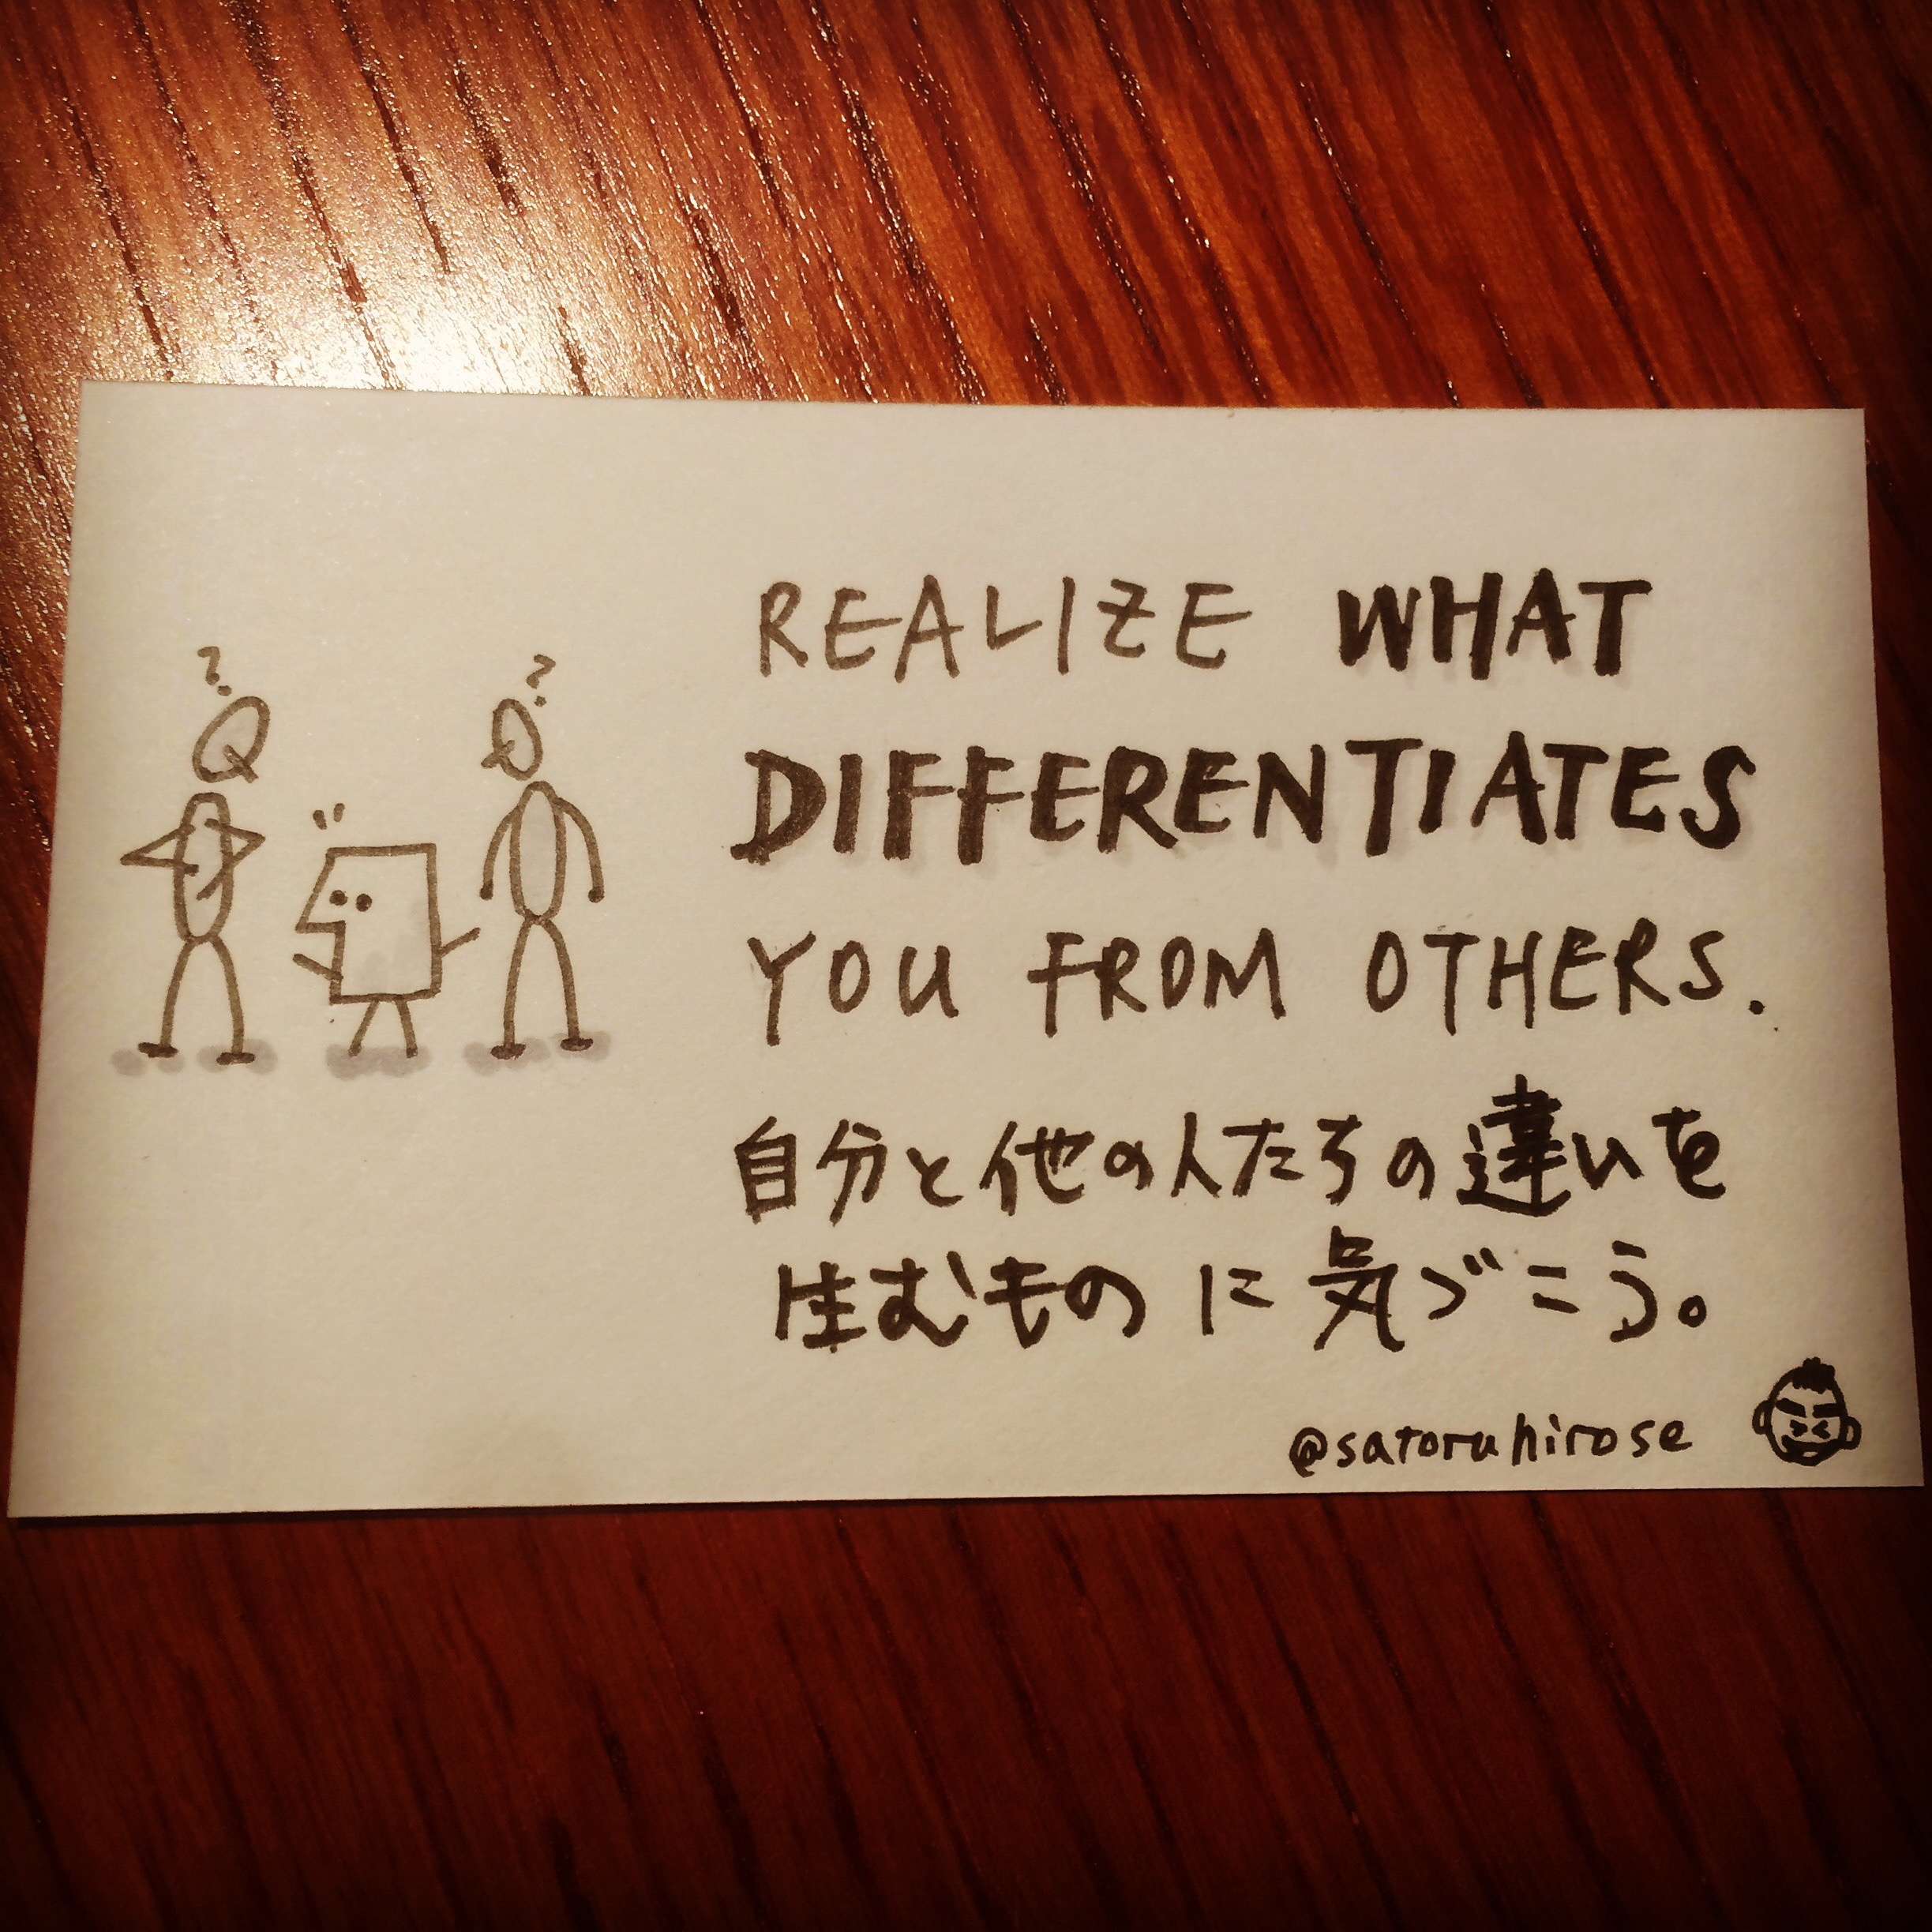 Realize what differentiates you from others.